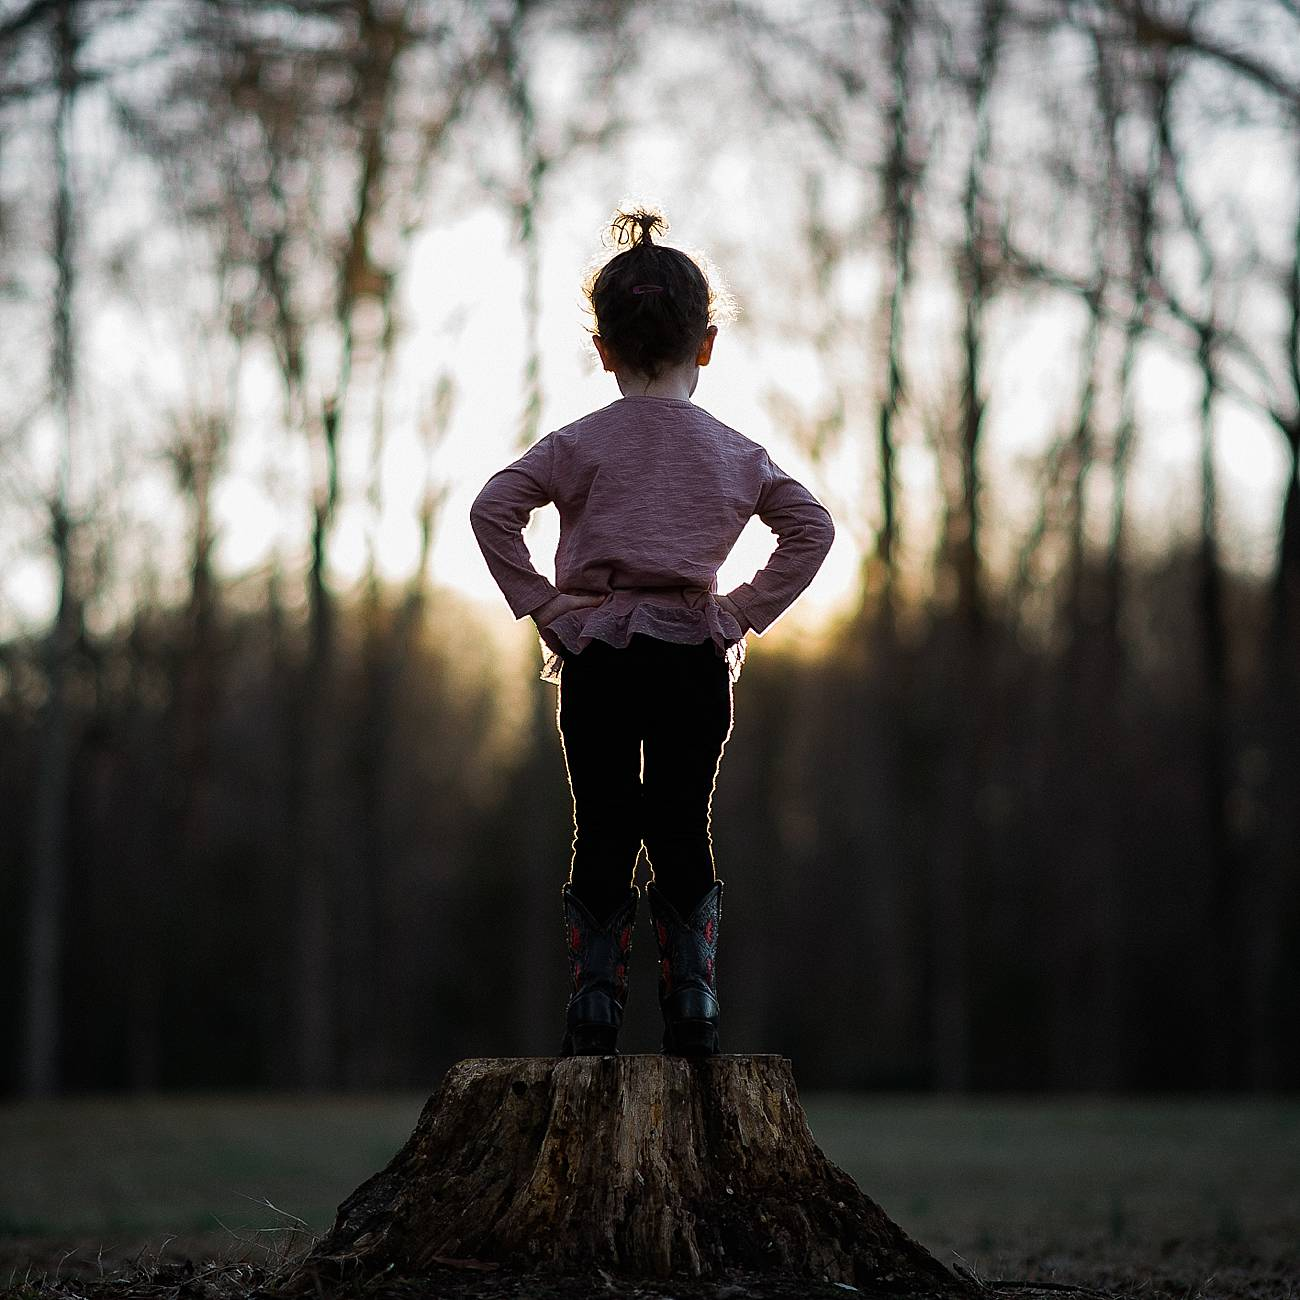 Toddler standing on stump looking at sunset at Westminster Park, Rock Hill, SC